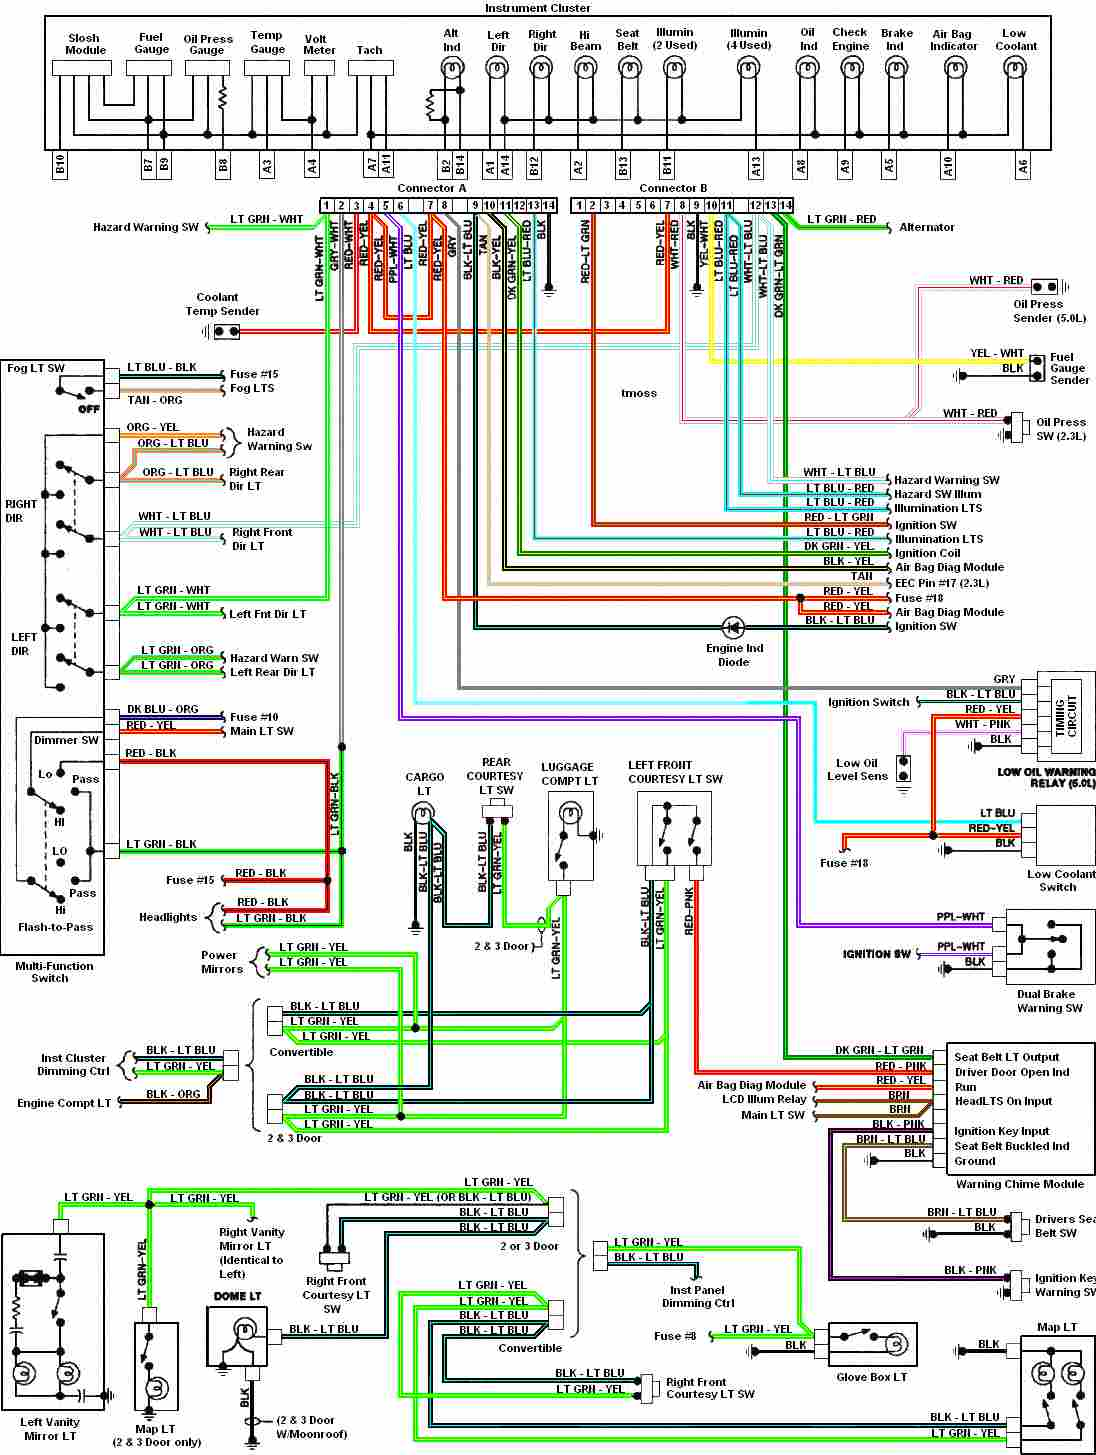 99 Nissan Altima Wiring Harness Diagrams Opinions About 2005 Headlight Diagram 1999 Jeep Cherokee Get Free Image 2013